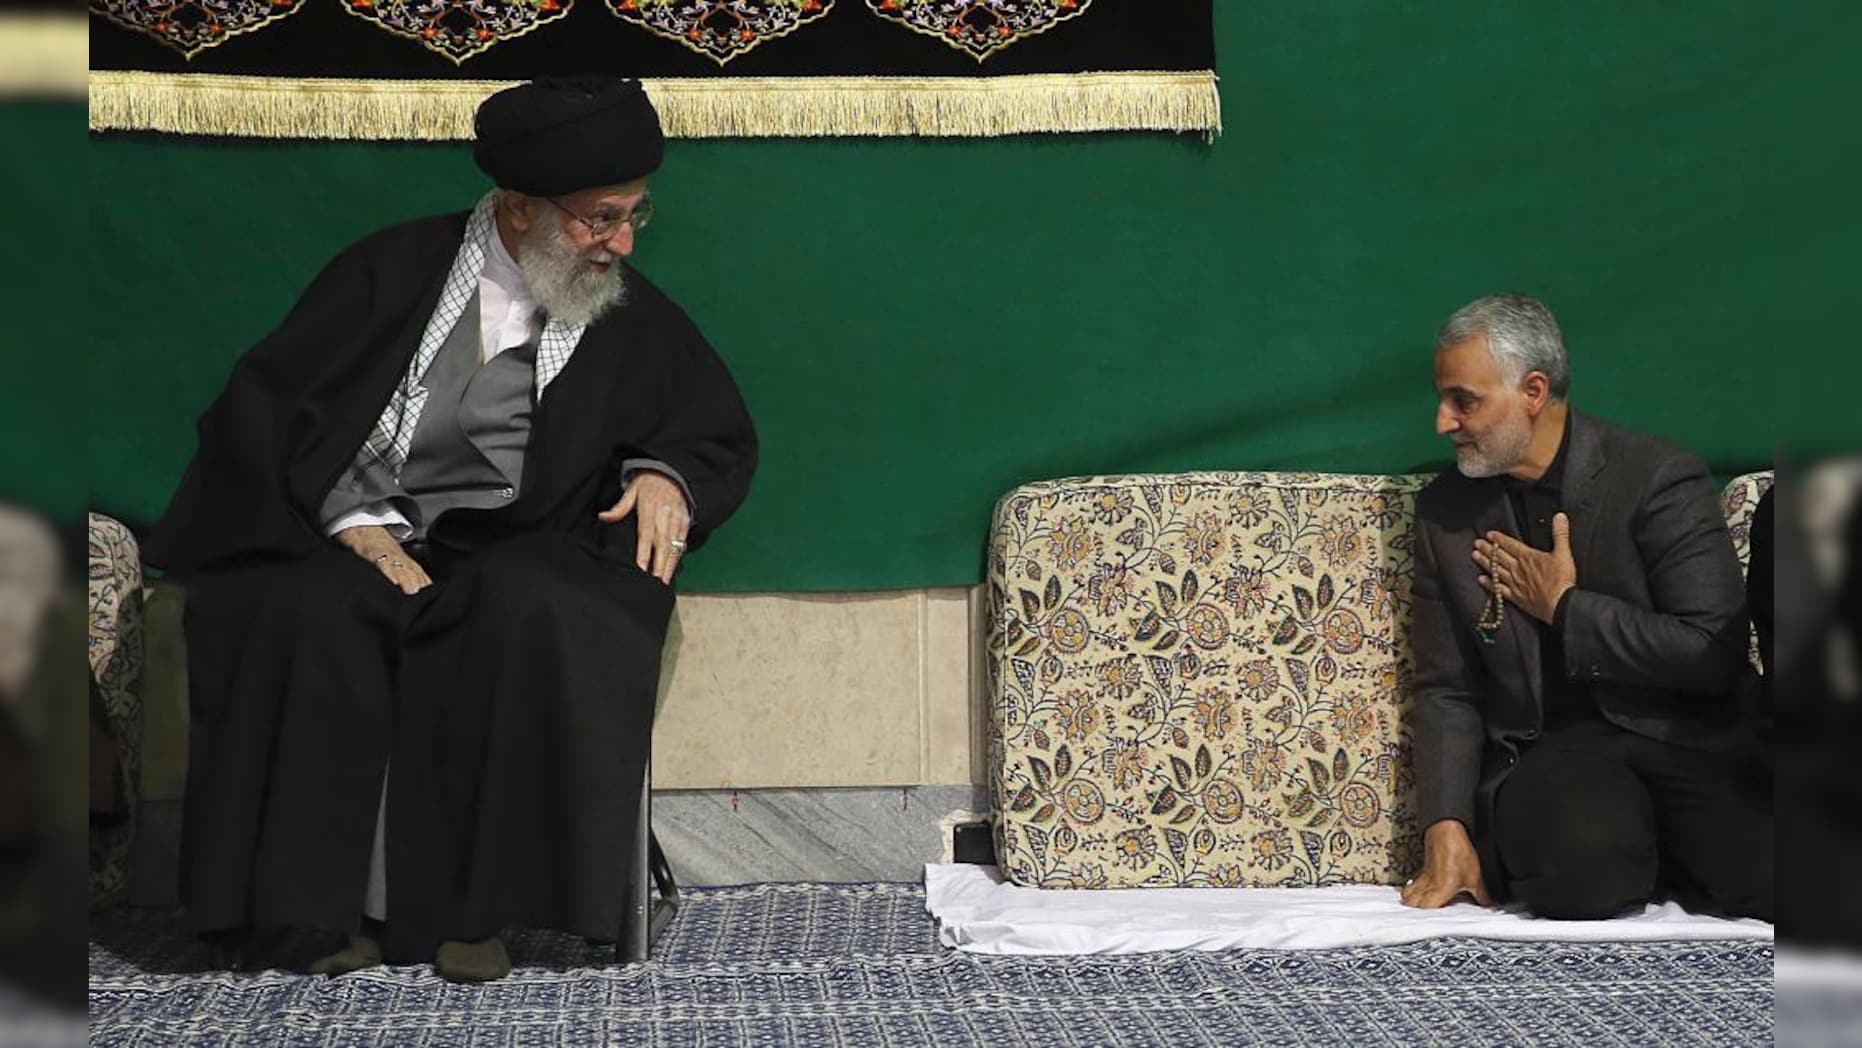 Soleimani, the powerful Iranian strategist feared by the United States